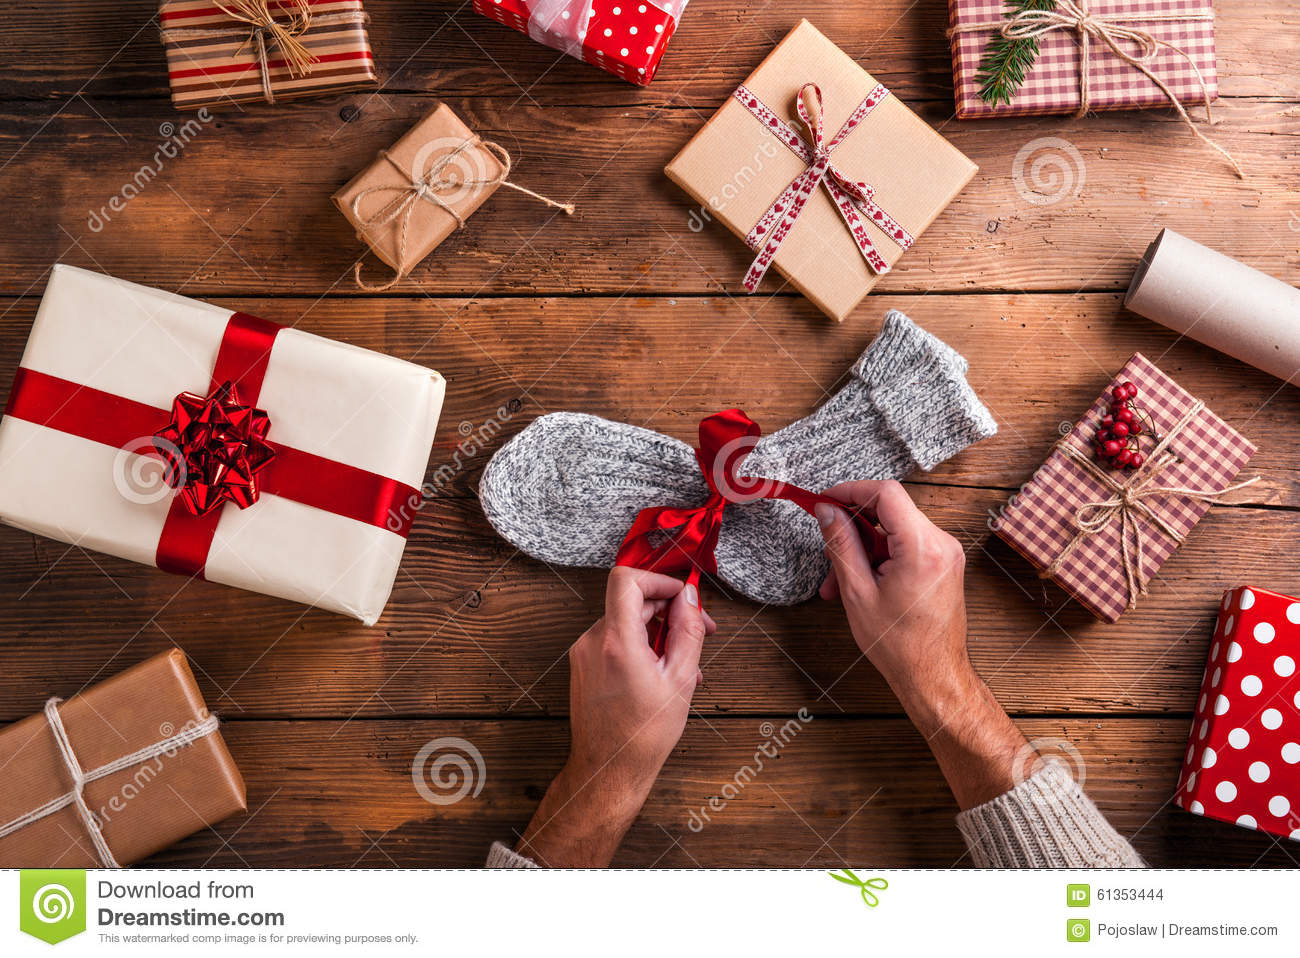 106da473da Man unwrapping Christmas present laid on a wooden table background